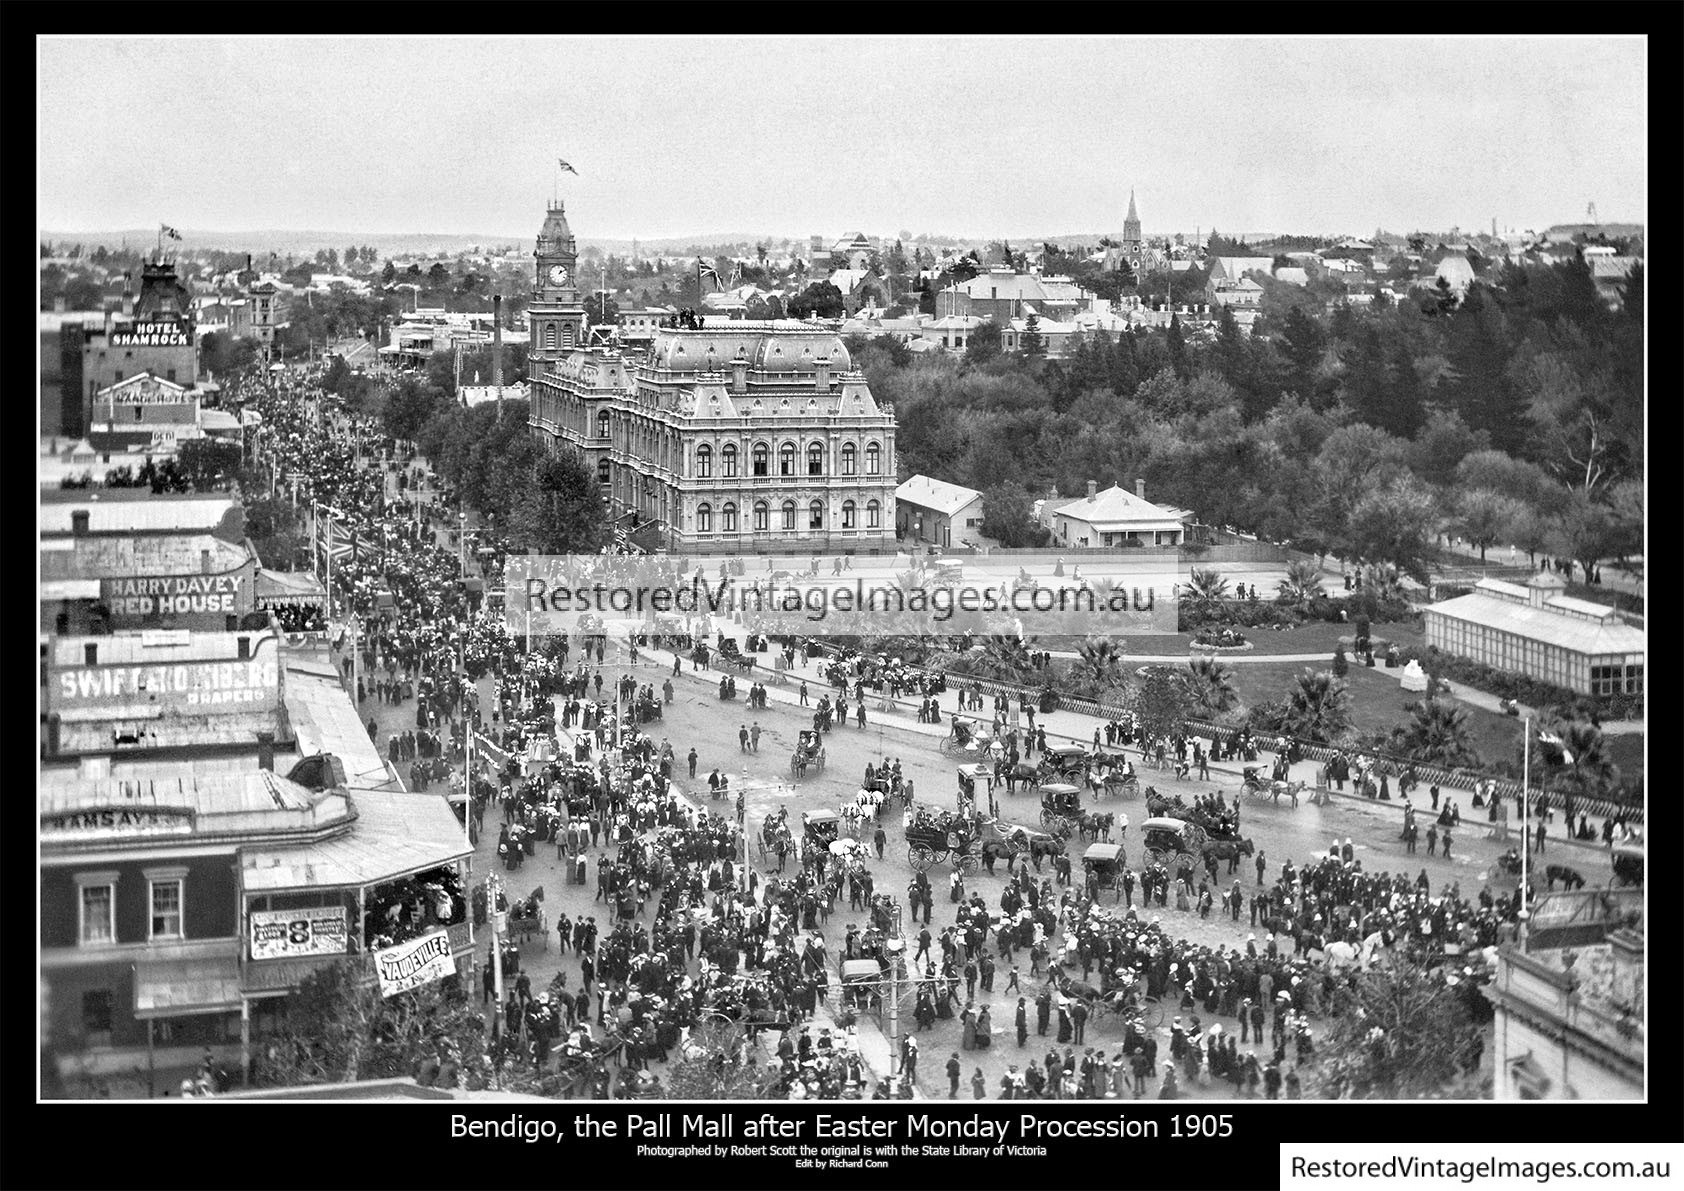 Bendigo, The Pall Mall After The Easter Monday Procession 1905